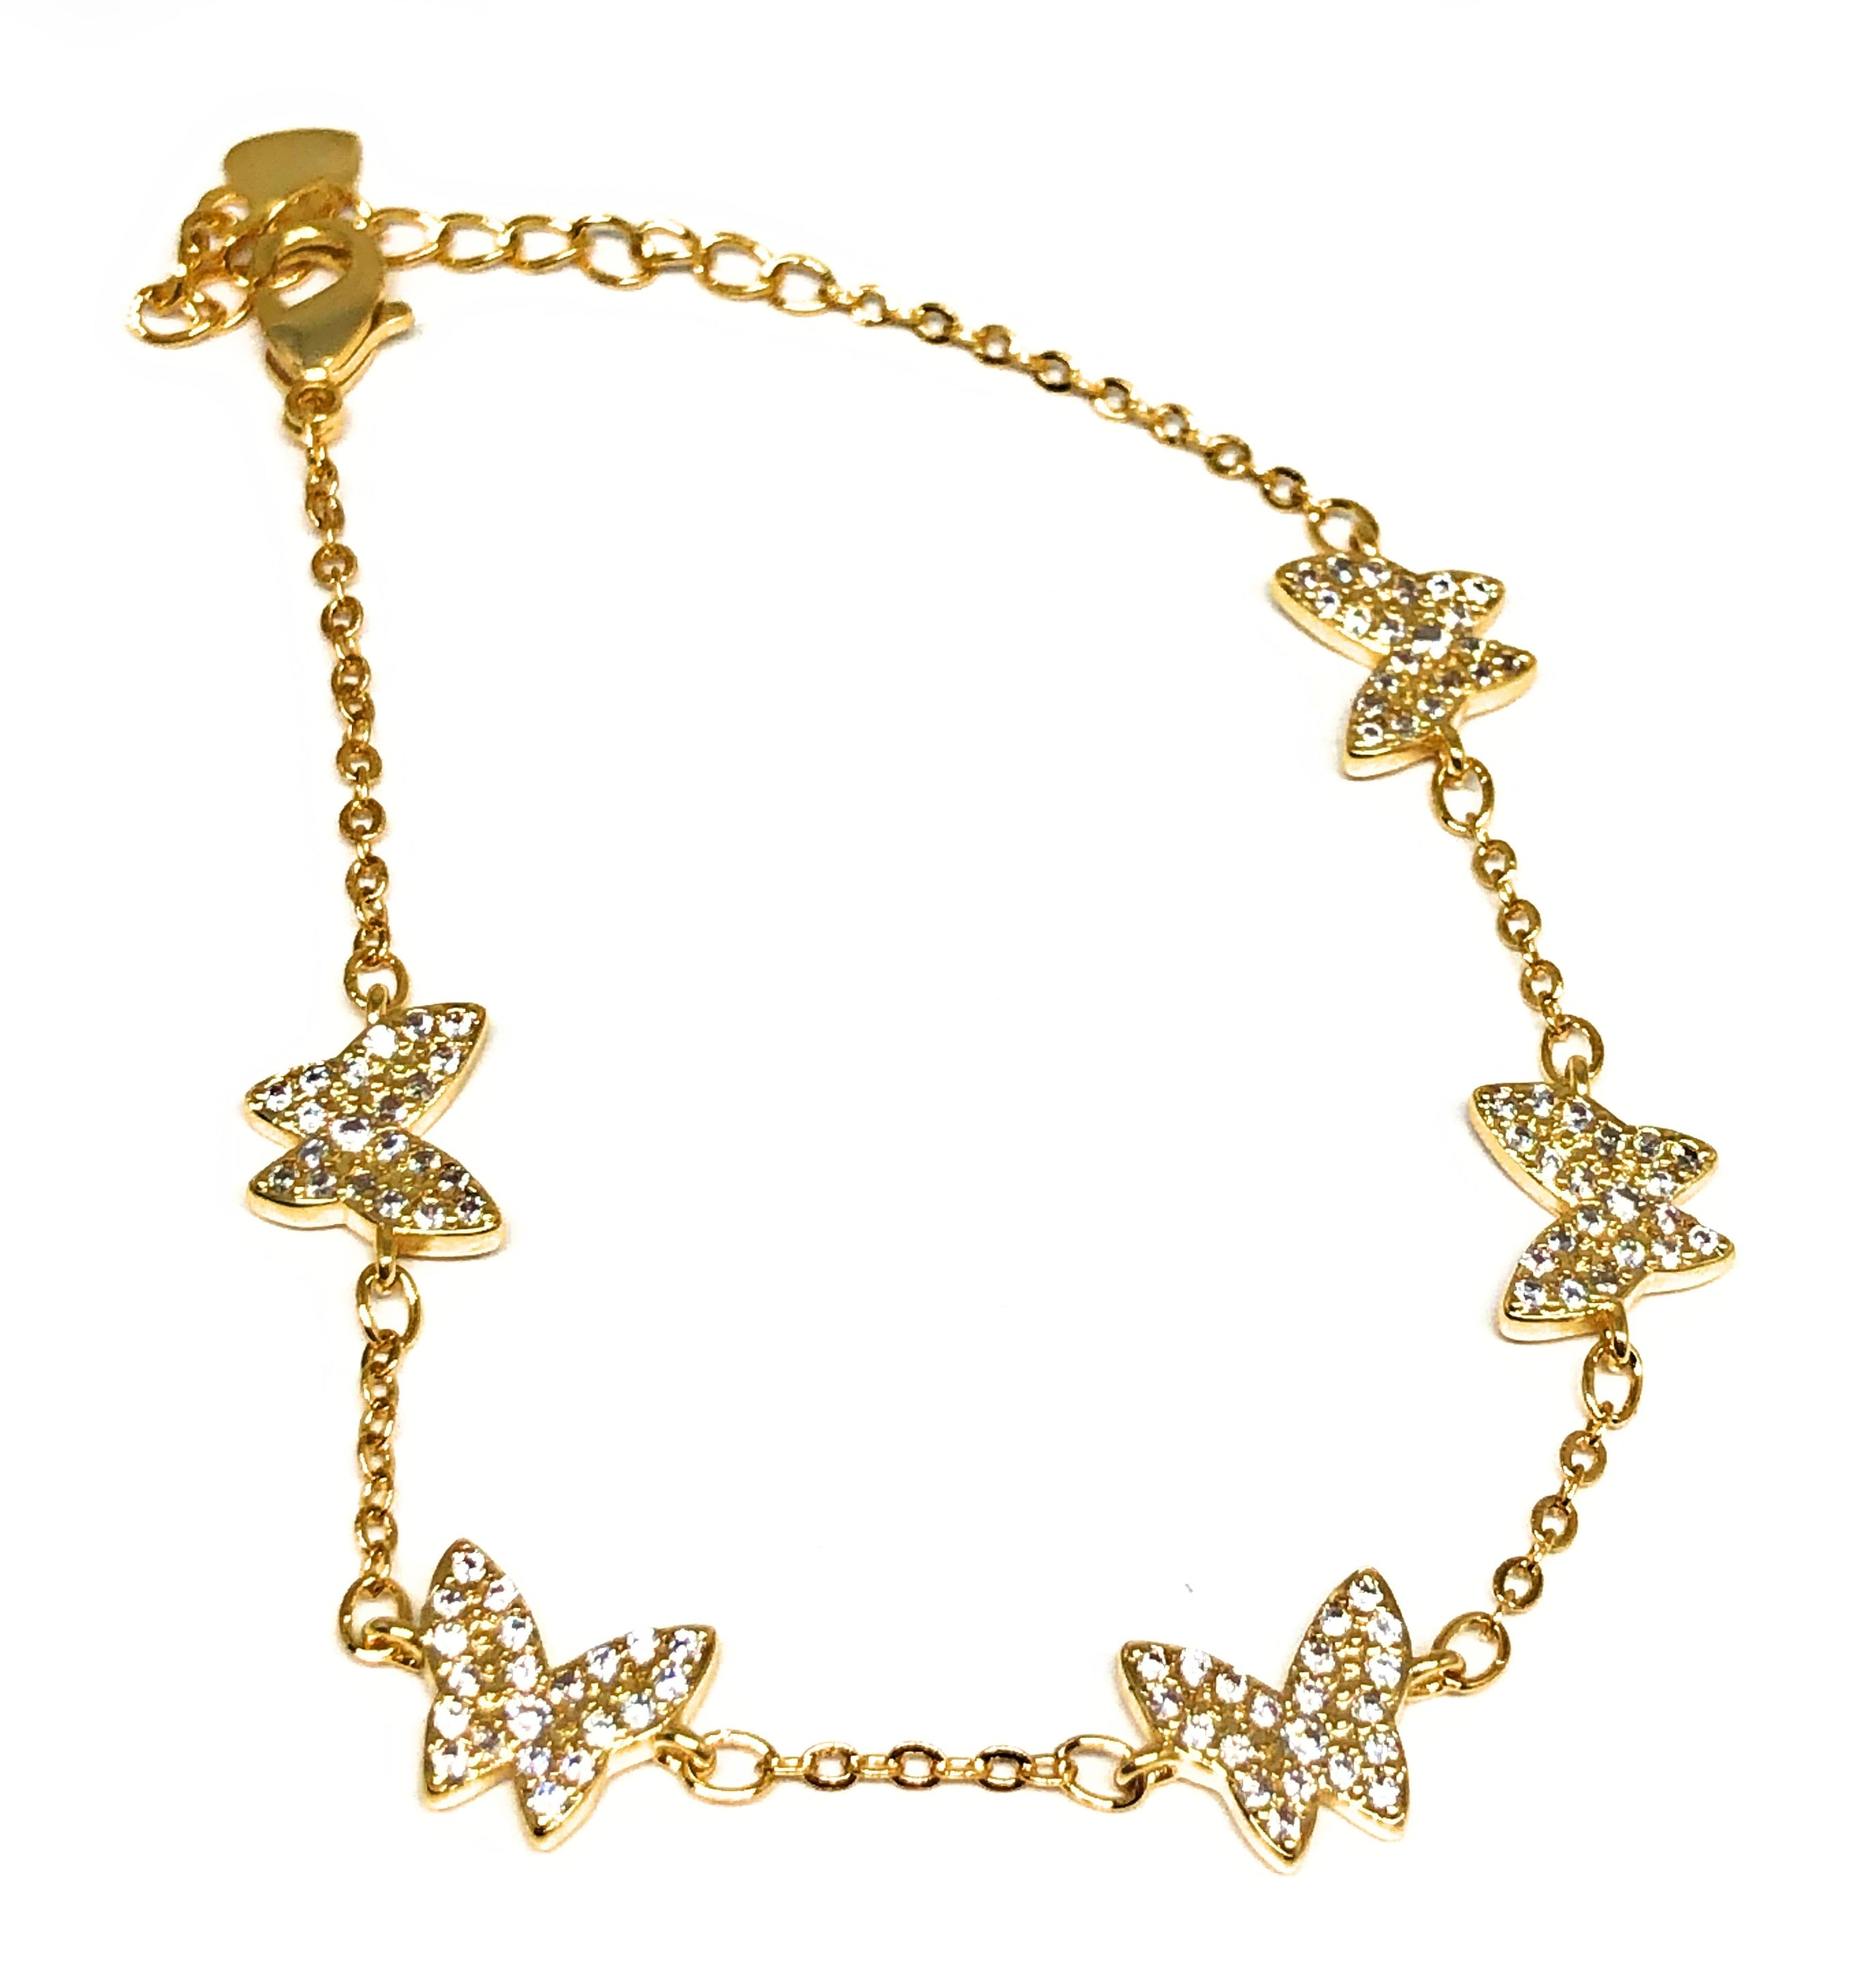 Gold Plated Butterfly Charm CZ Adjustable 8 inch Bracelet